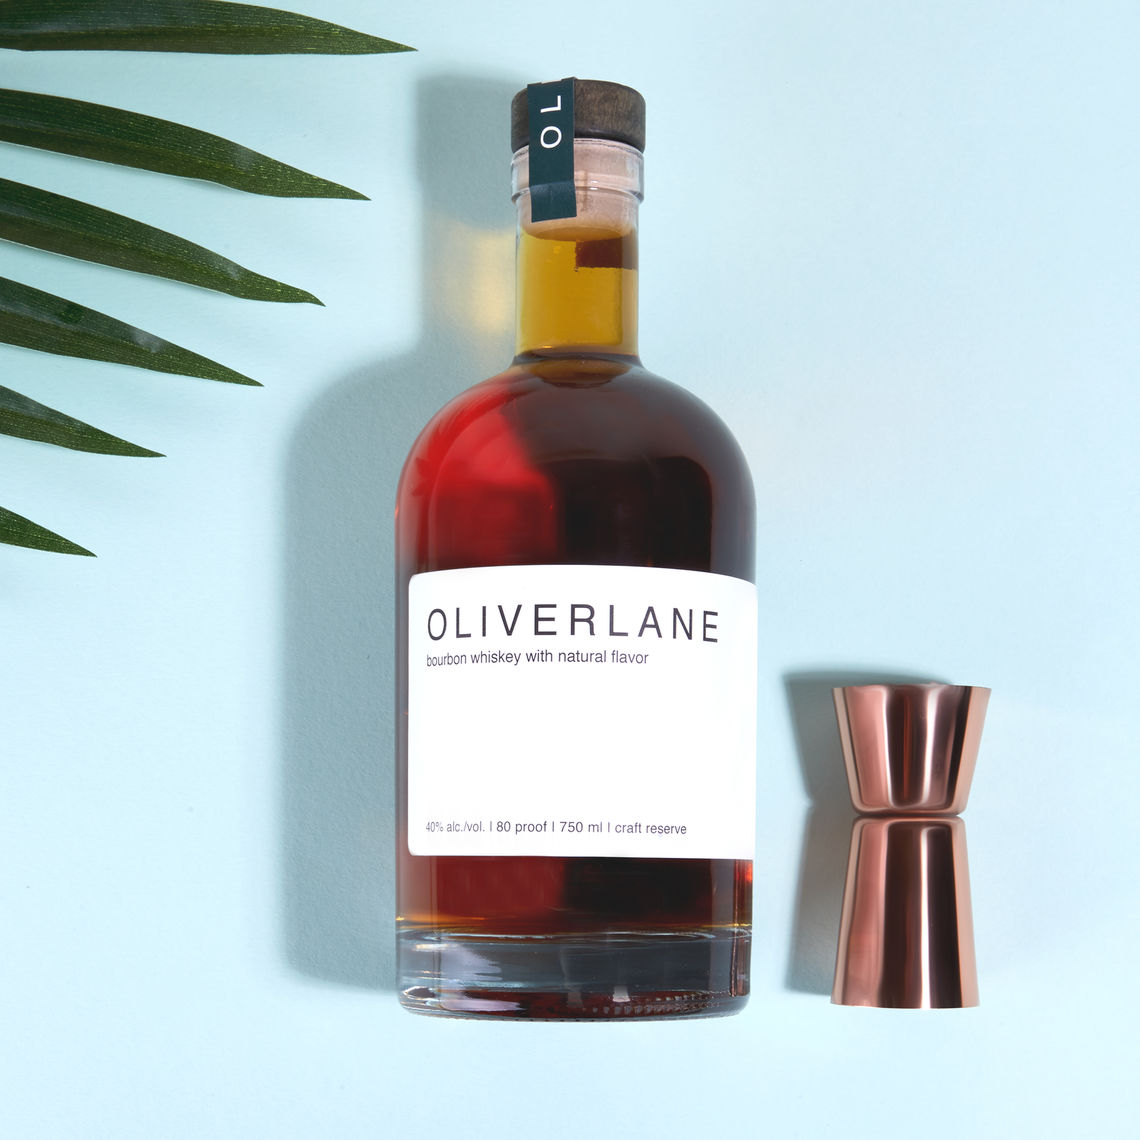 oliverlane whiskey profile bottle